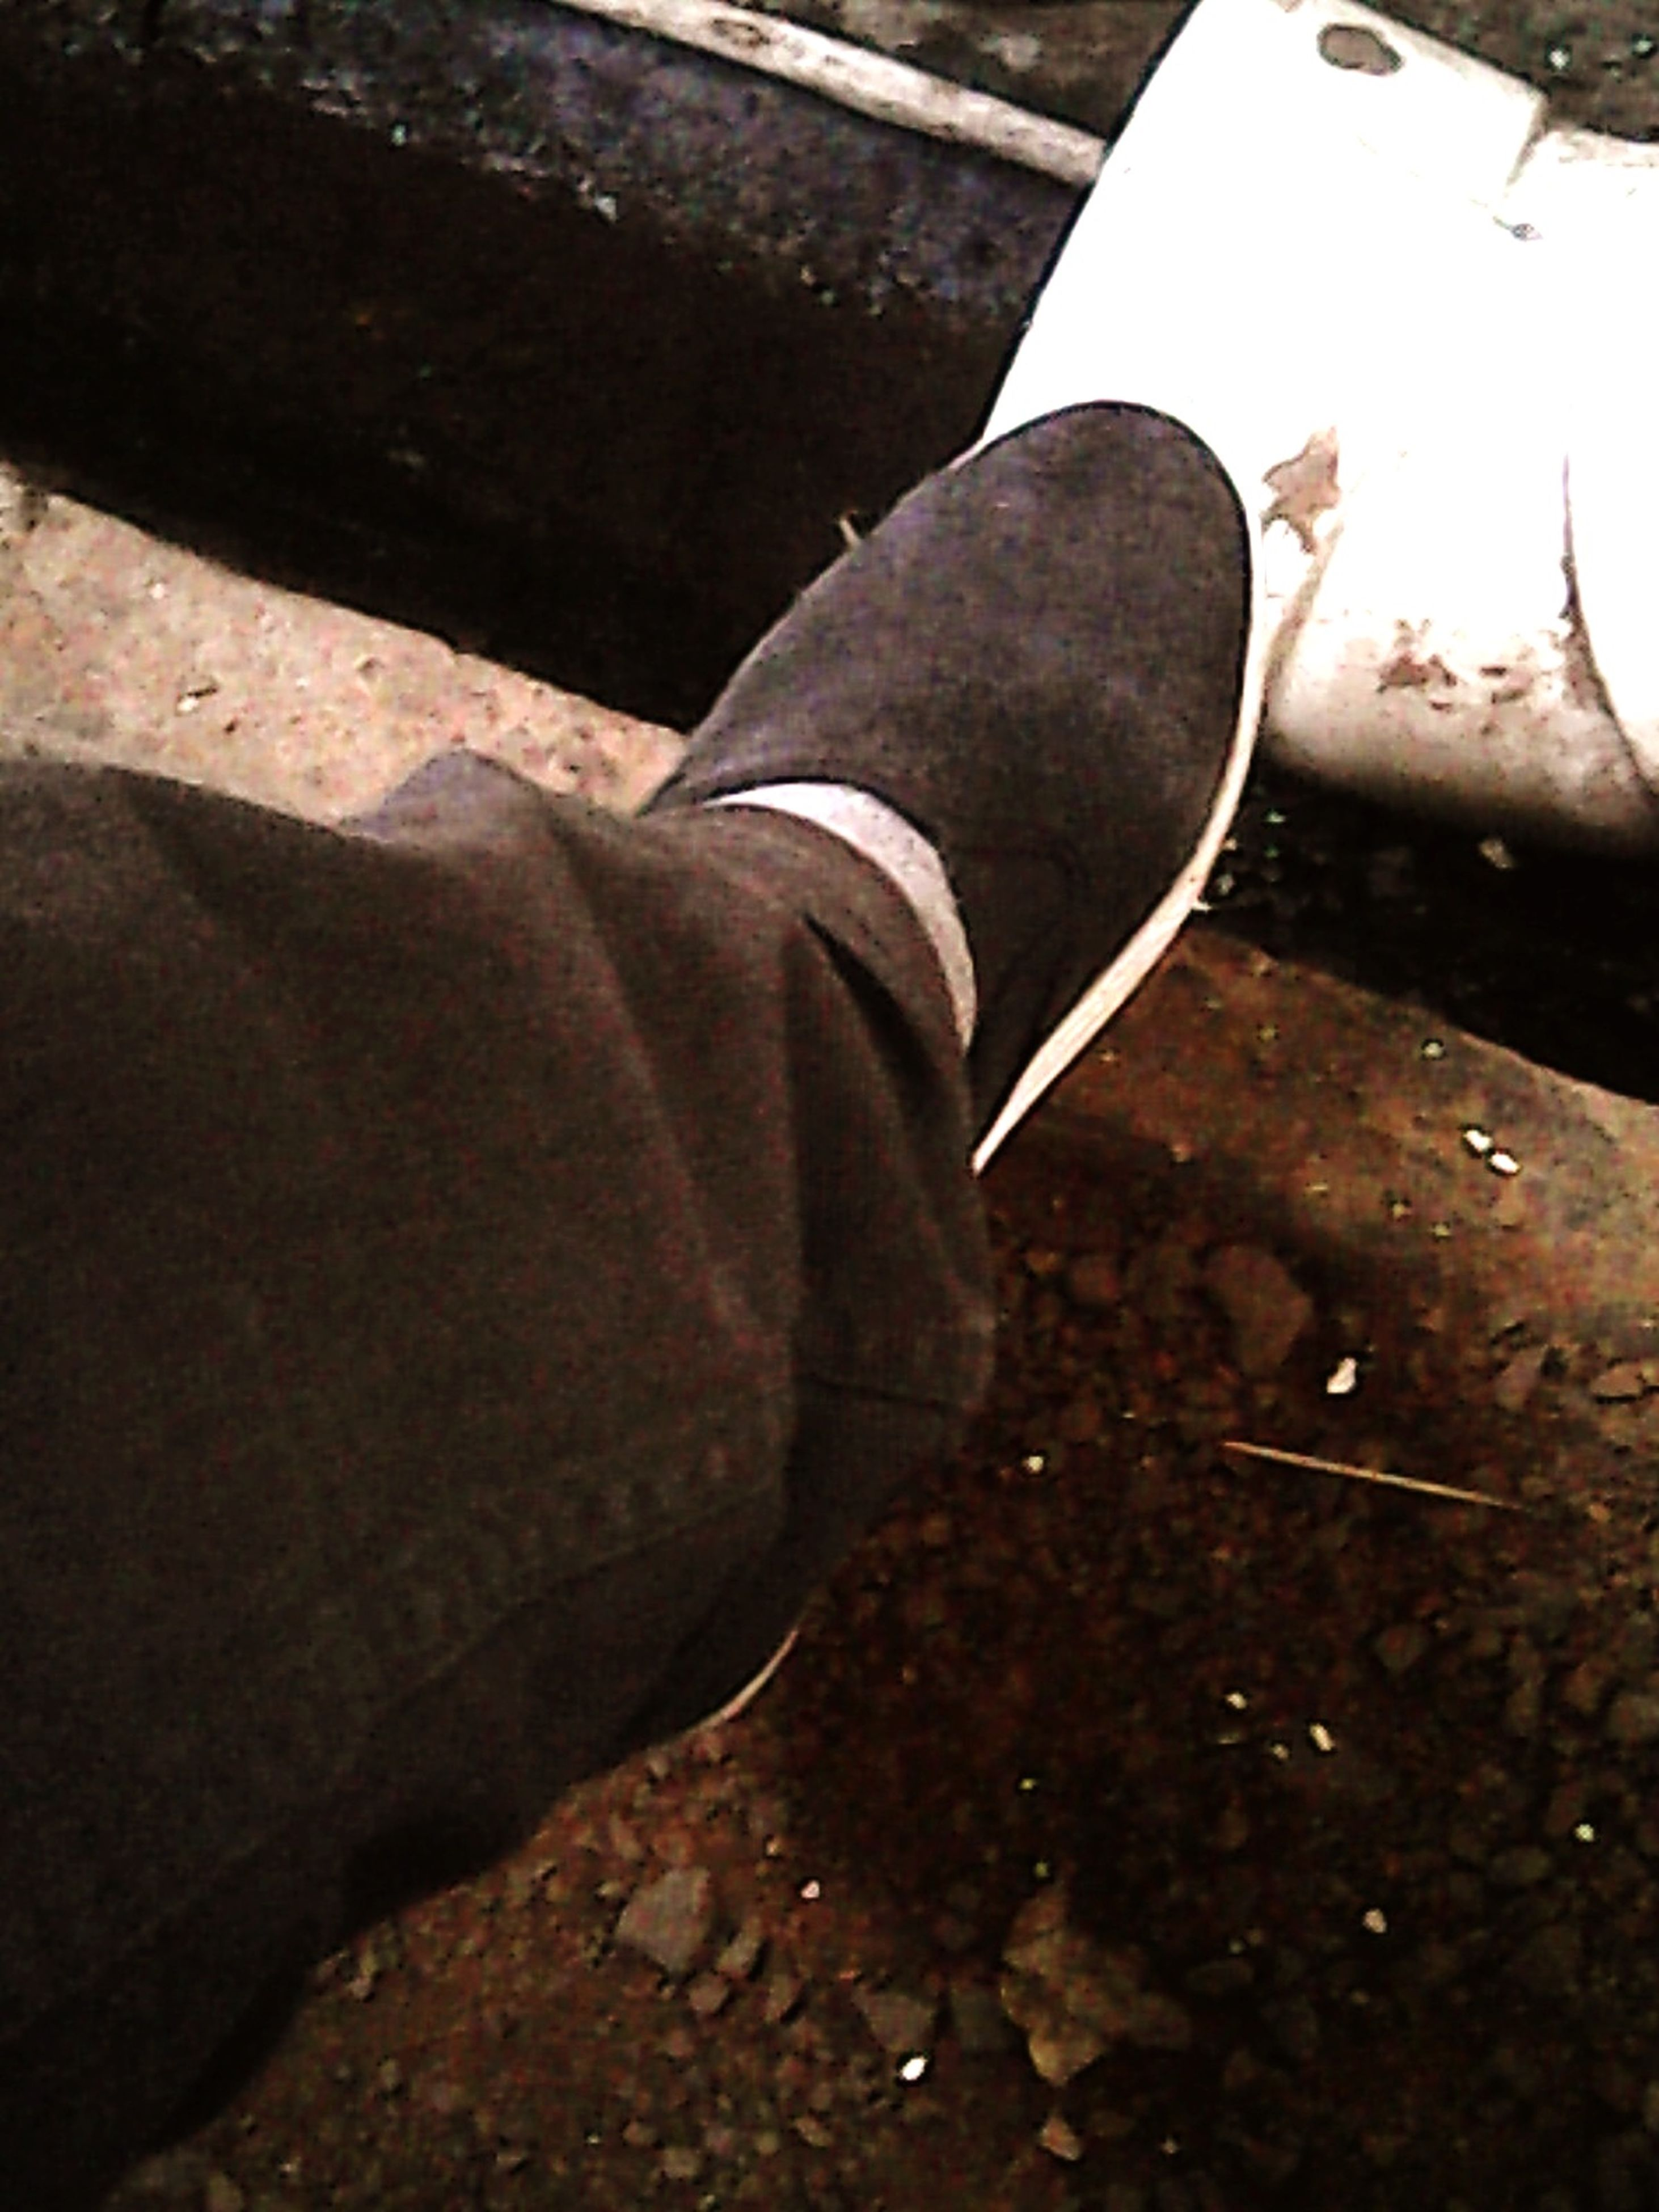 shoe, low section, person, jeans, high angle view, footwear, personal perspective, lifestyles, part of, standing, close-up, street, men, casual clothing, human foot, day, sitting